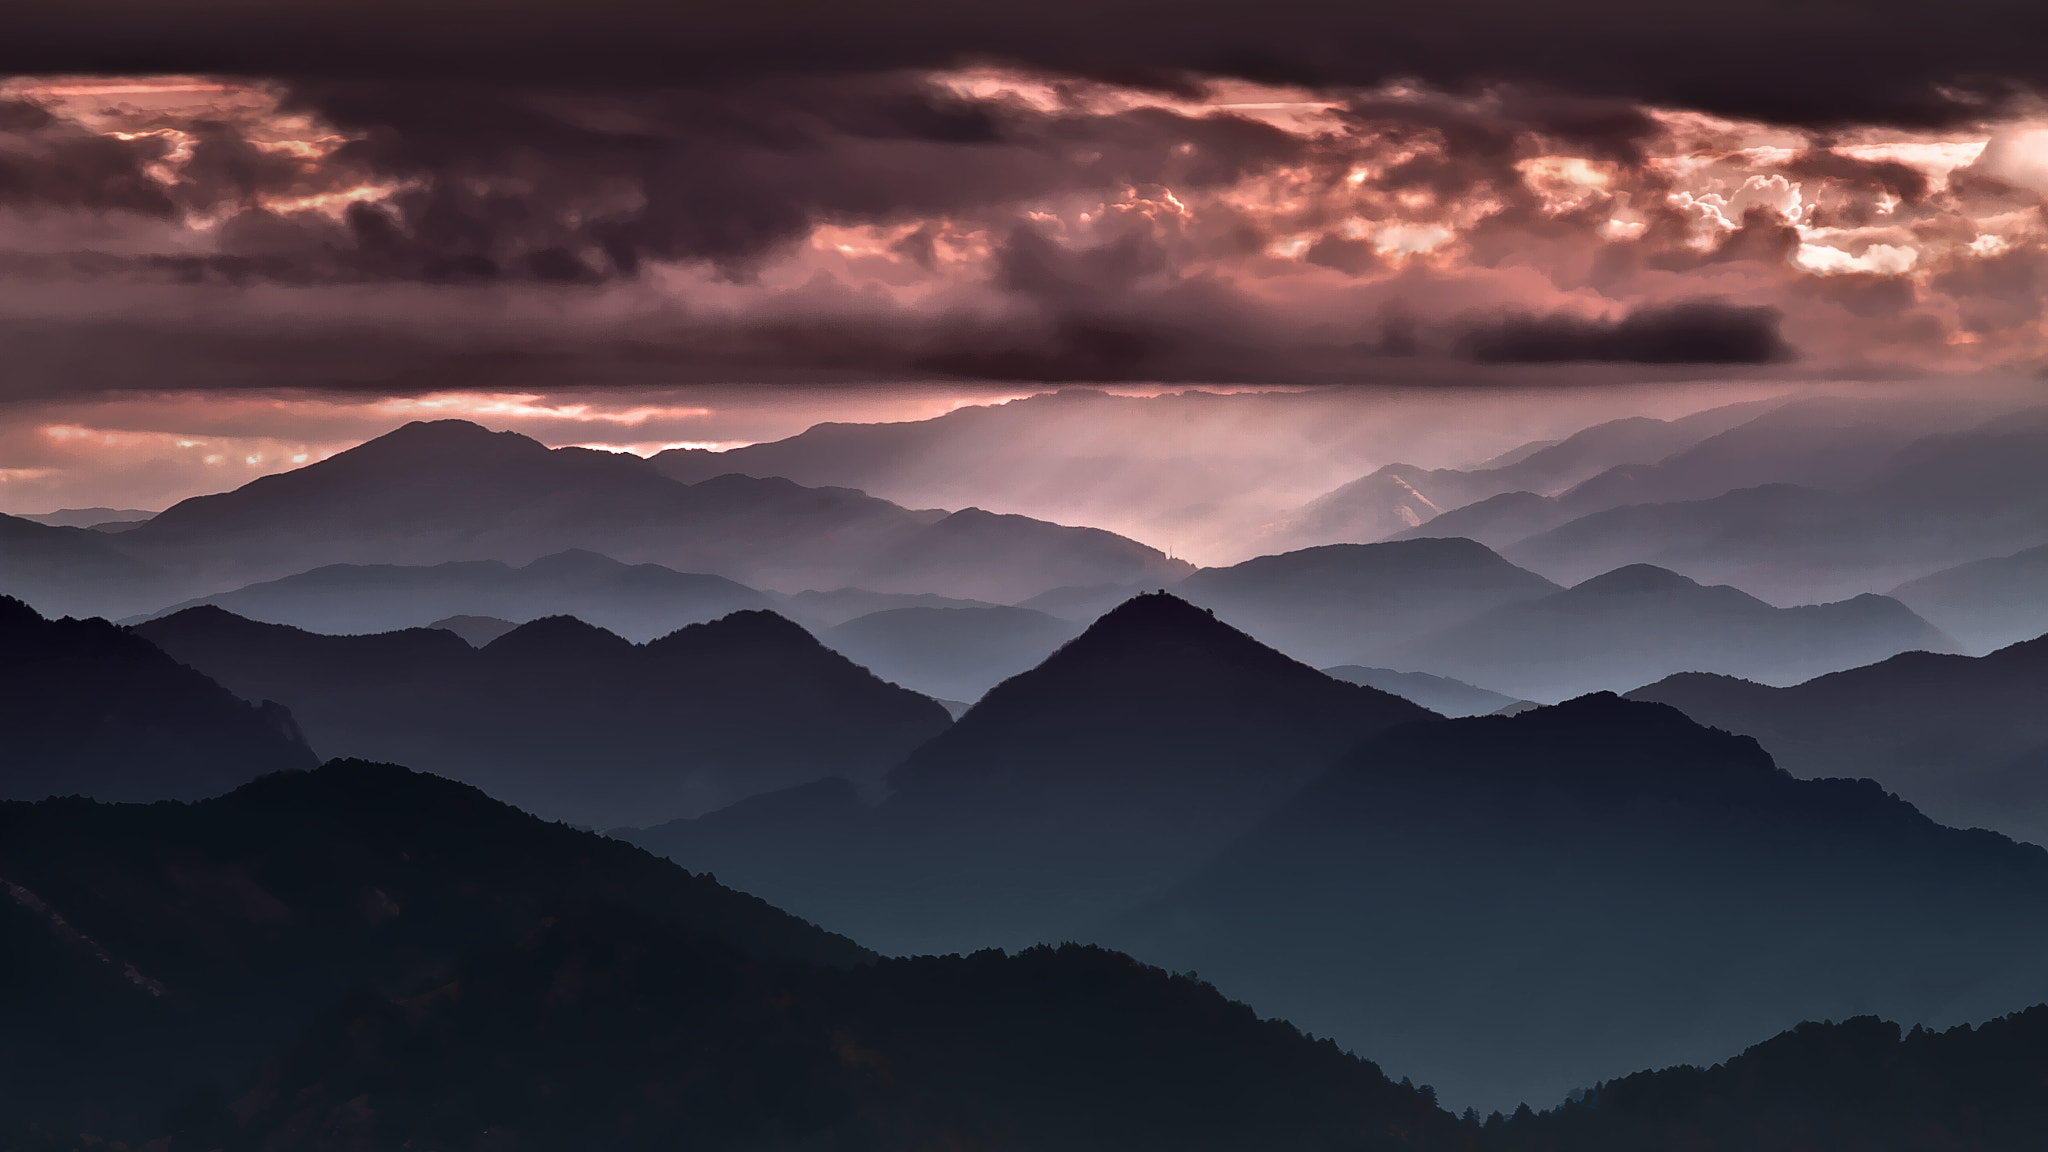 Photograph Natural Layers by Ferran Vega on 500px